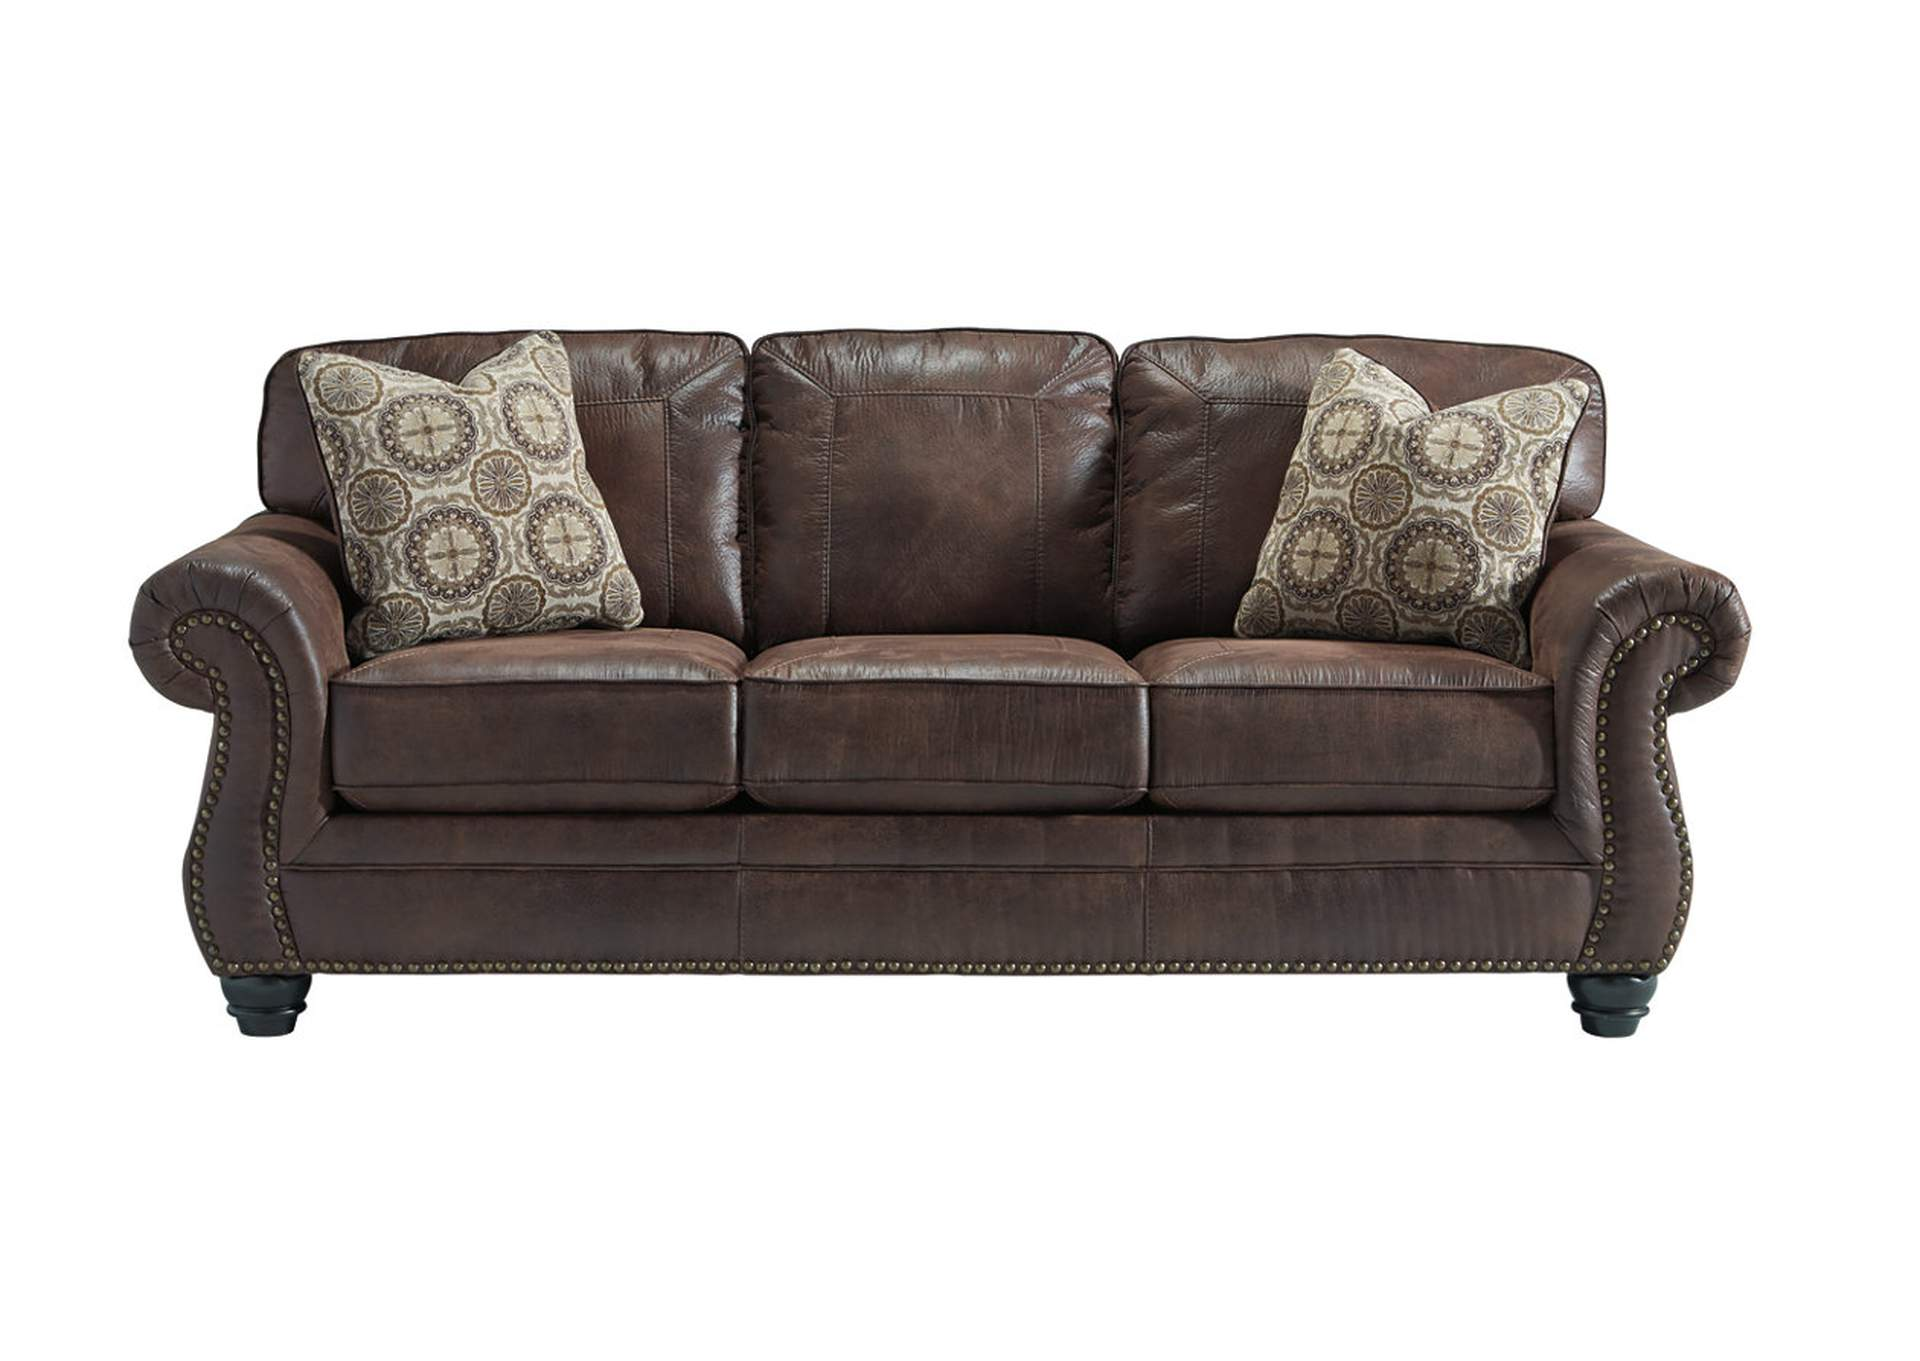 Furniture Liquidators Home Center Breville Espresso Sofa